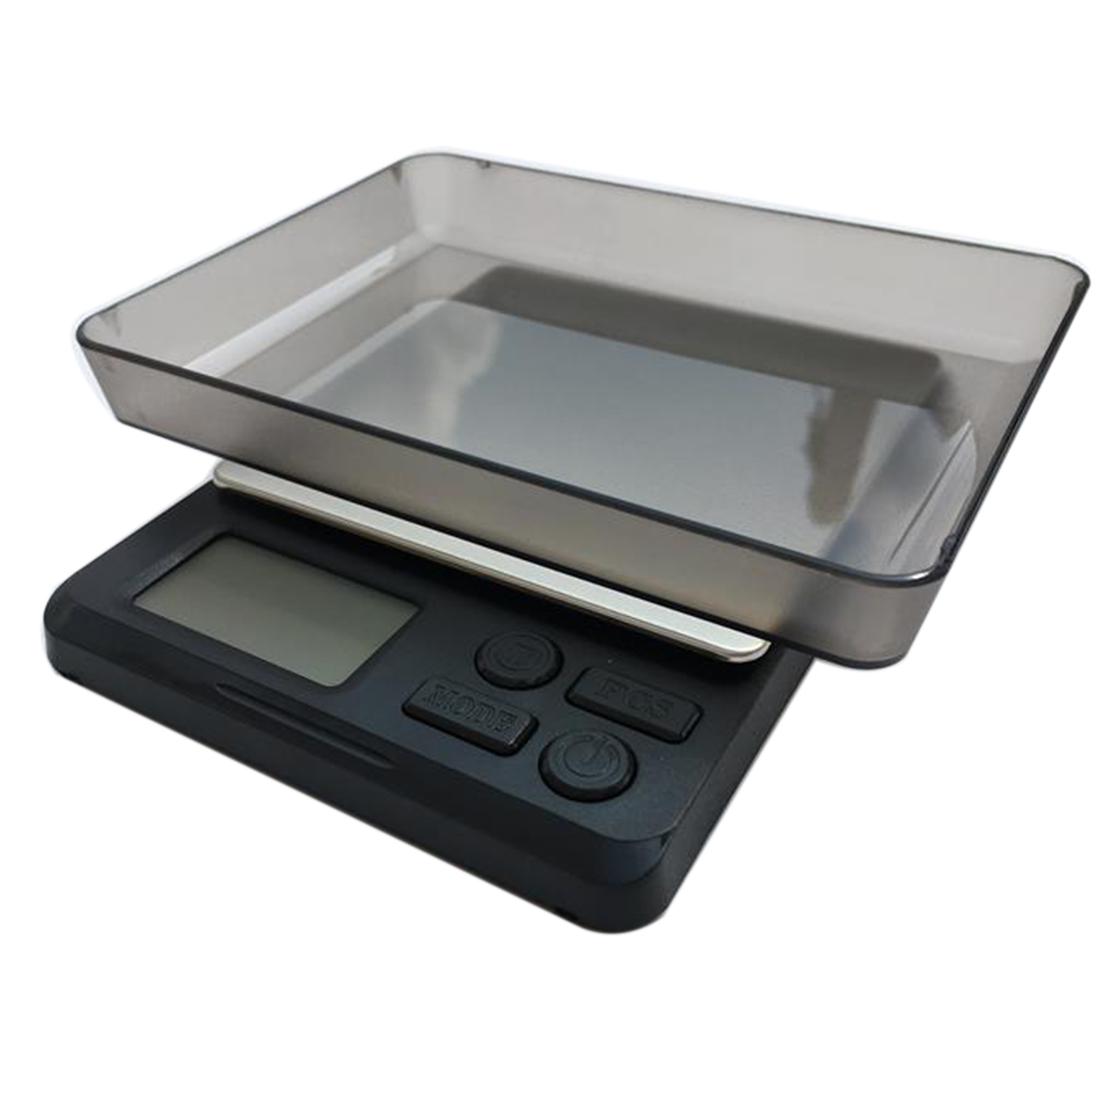 buy big sale precision jewelry scales 1000g weigh. Black Bedroom Furniture Sets. Home Design Ideas